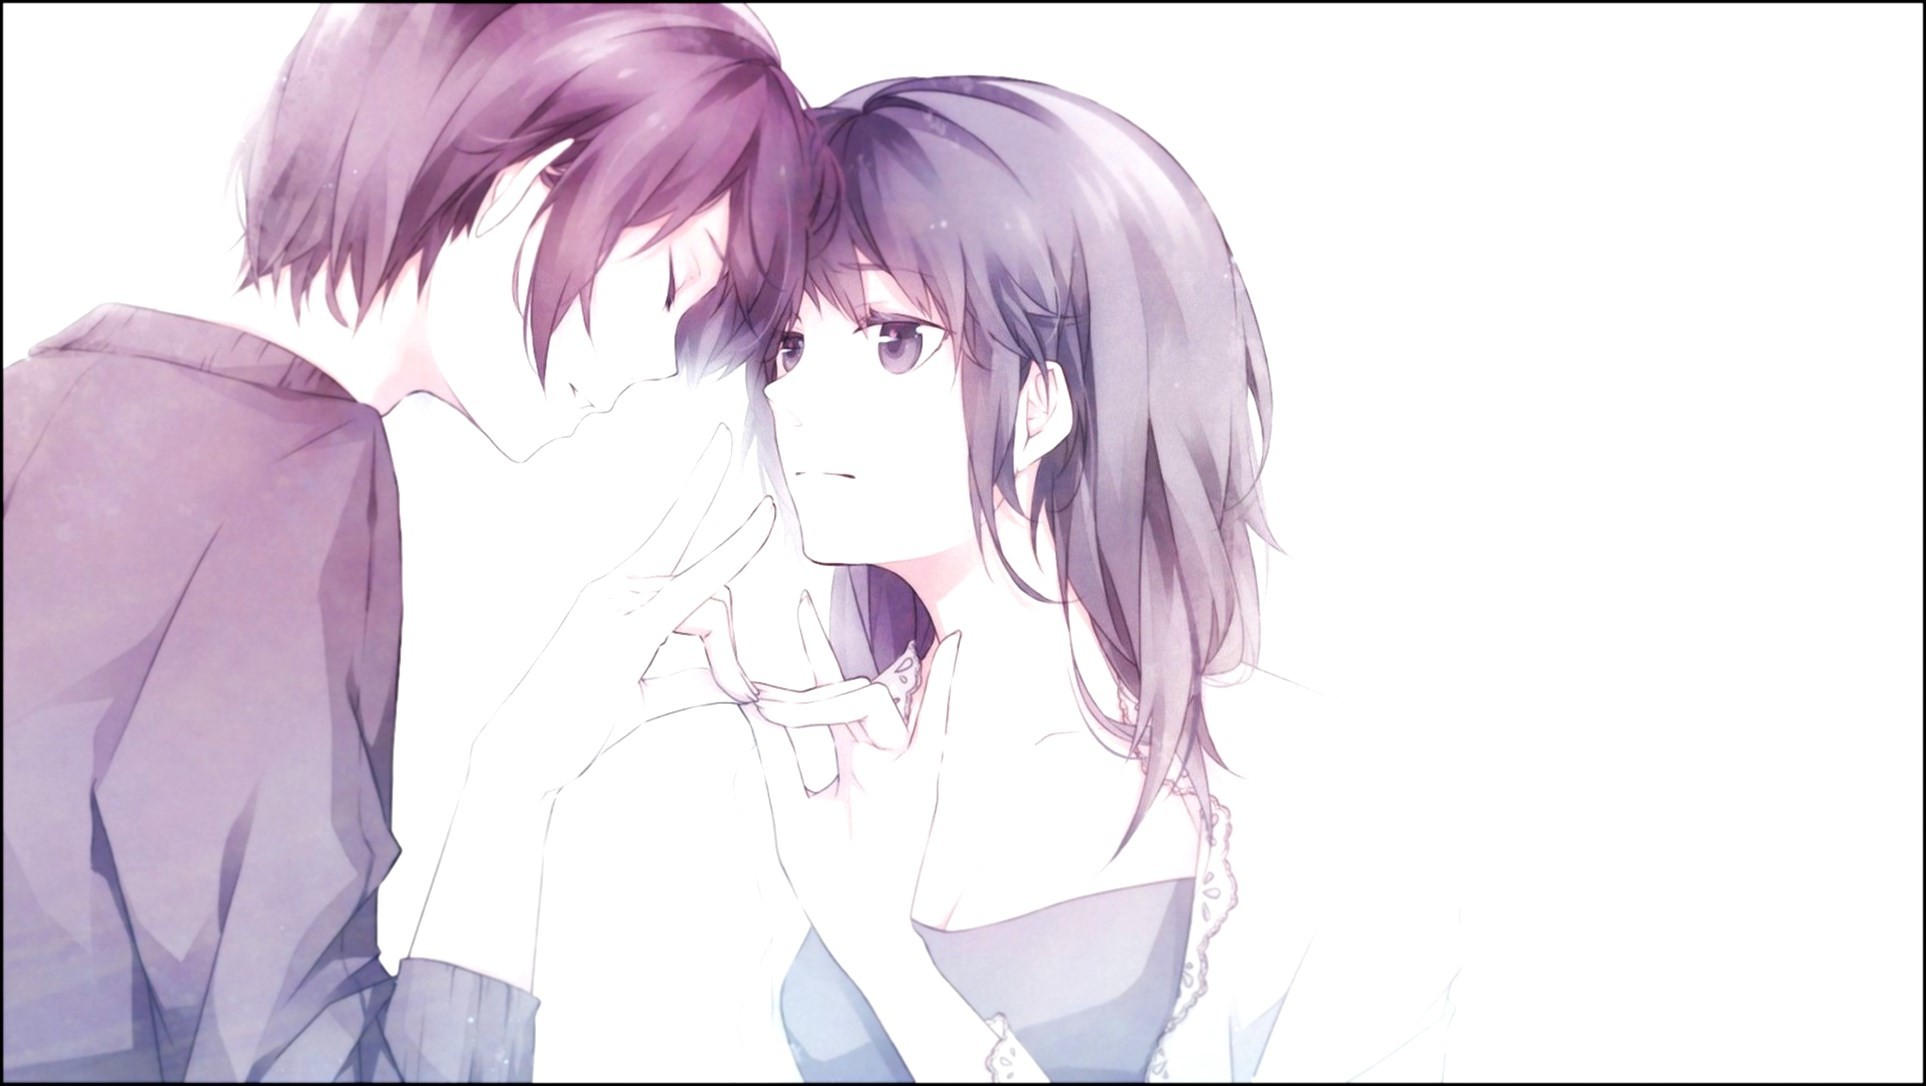 Anime Images Wallpaper Love Couples Couple Hd Wallpaper: Cute Anime Couple Wallpaper (70+ Images